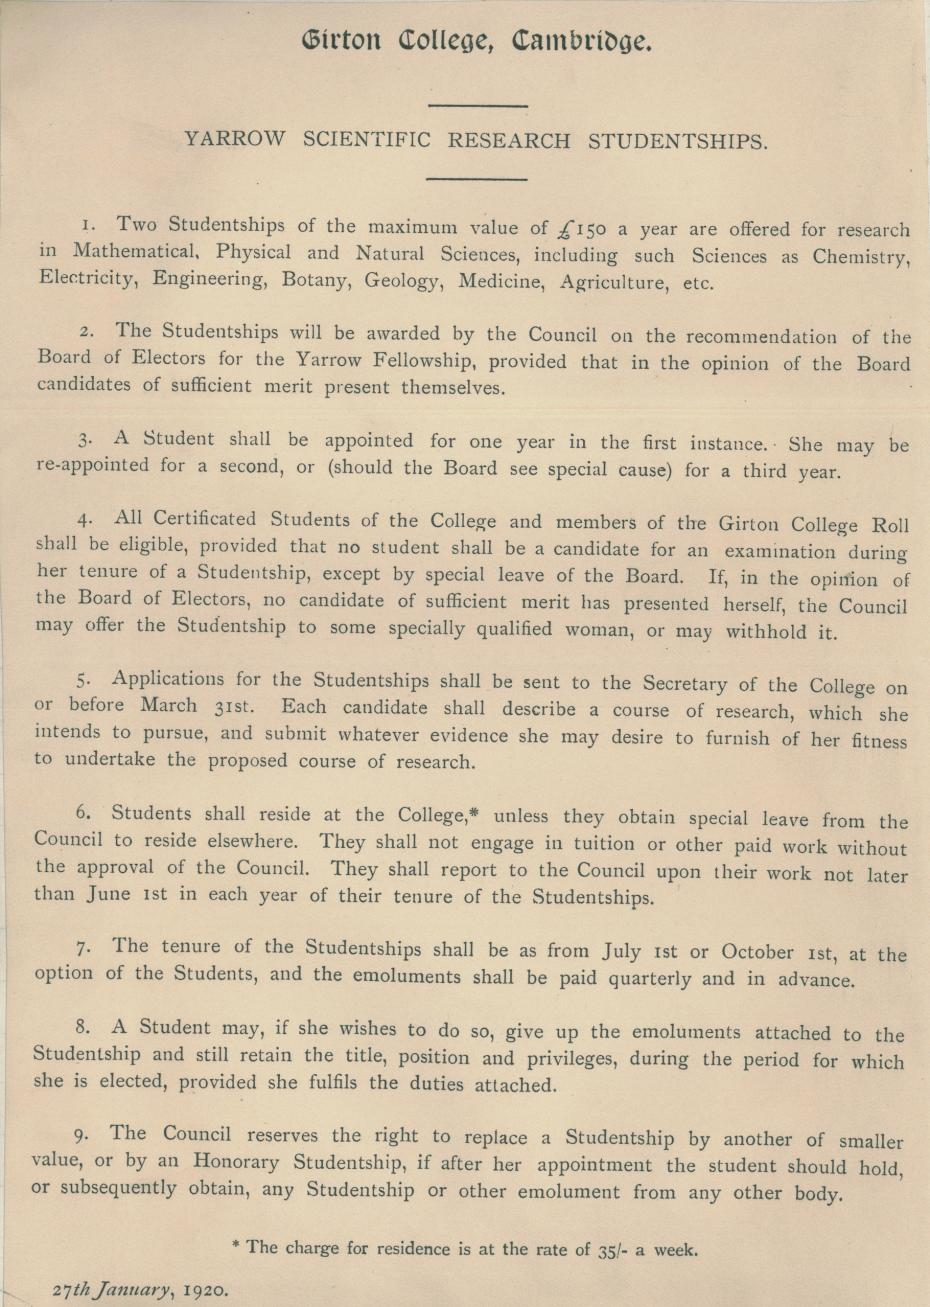 Yarrow Scientific Research Studentship, insert from the College Council minutes, 27 Jan 1920 (archive reference: GCGB 2/1/22pt)